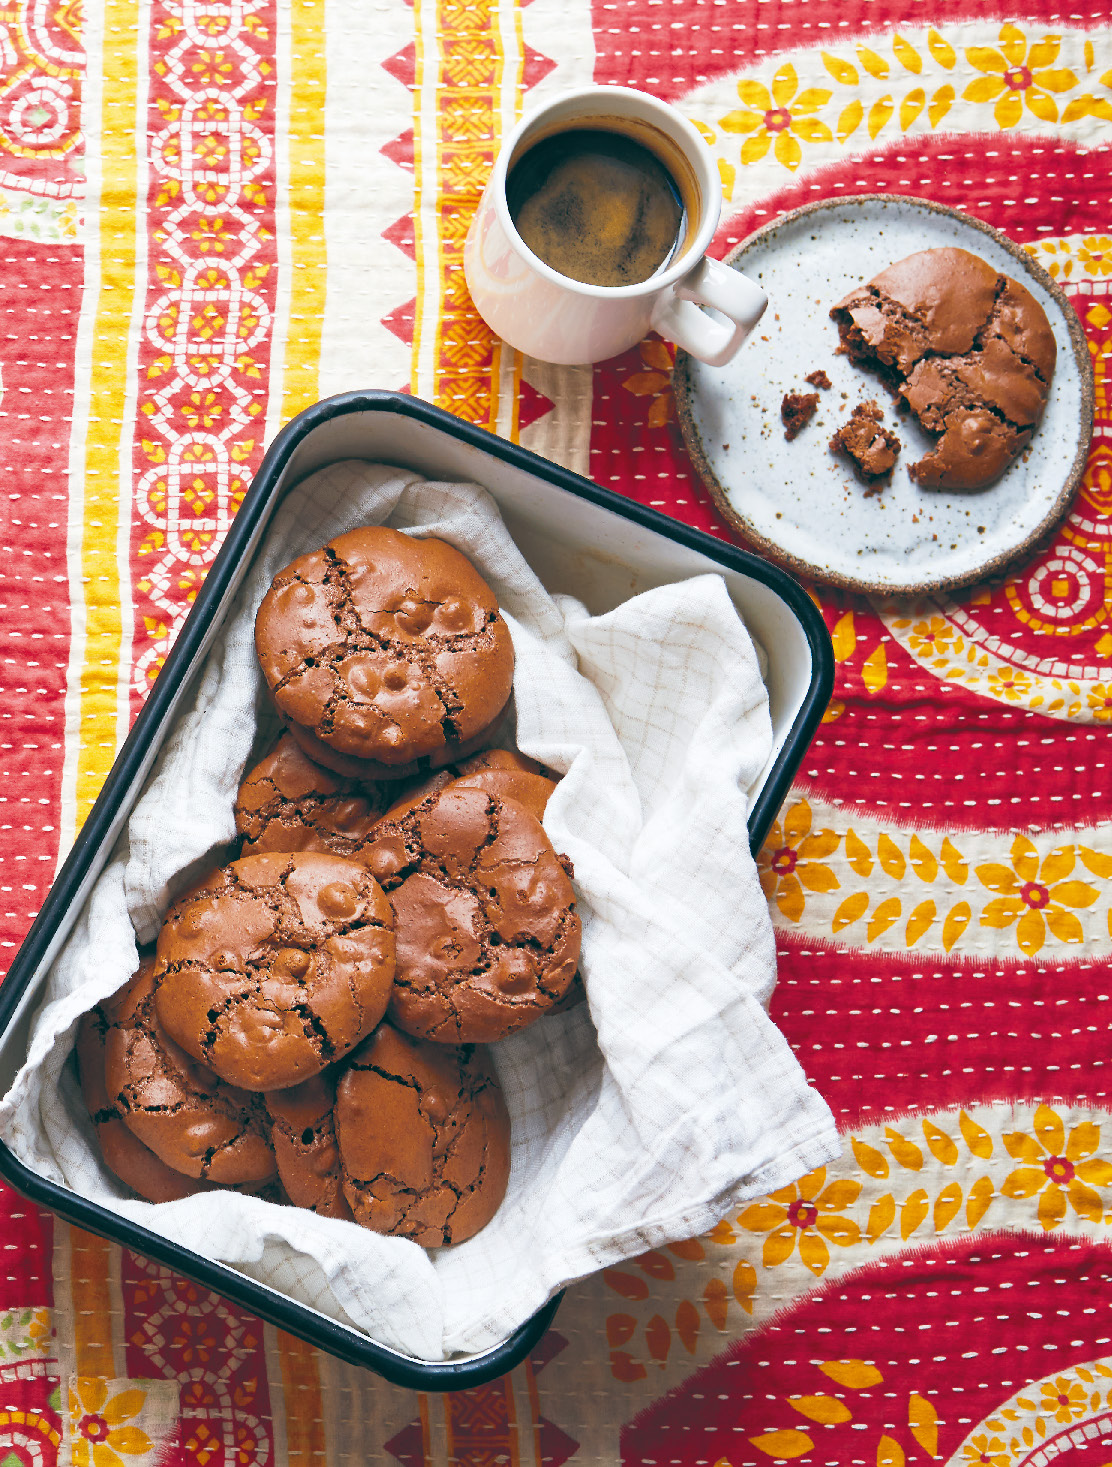 Chocolate & fennel cookies